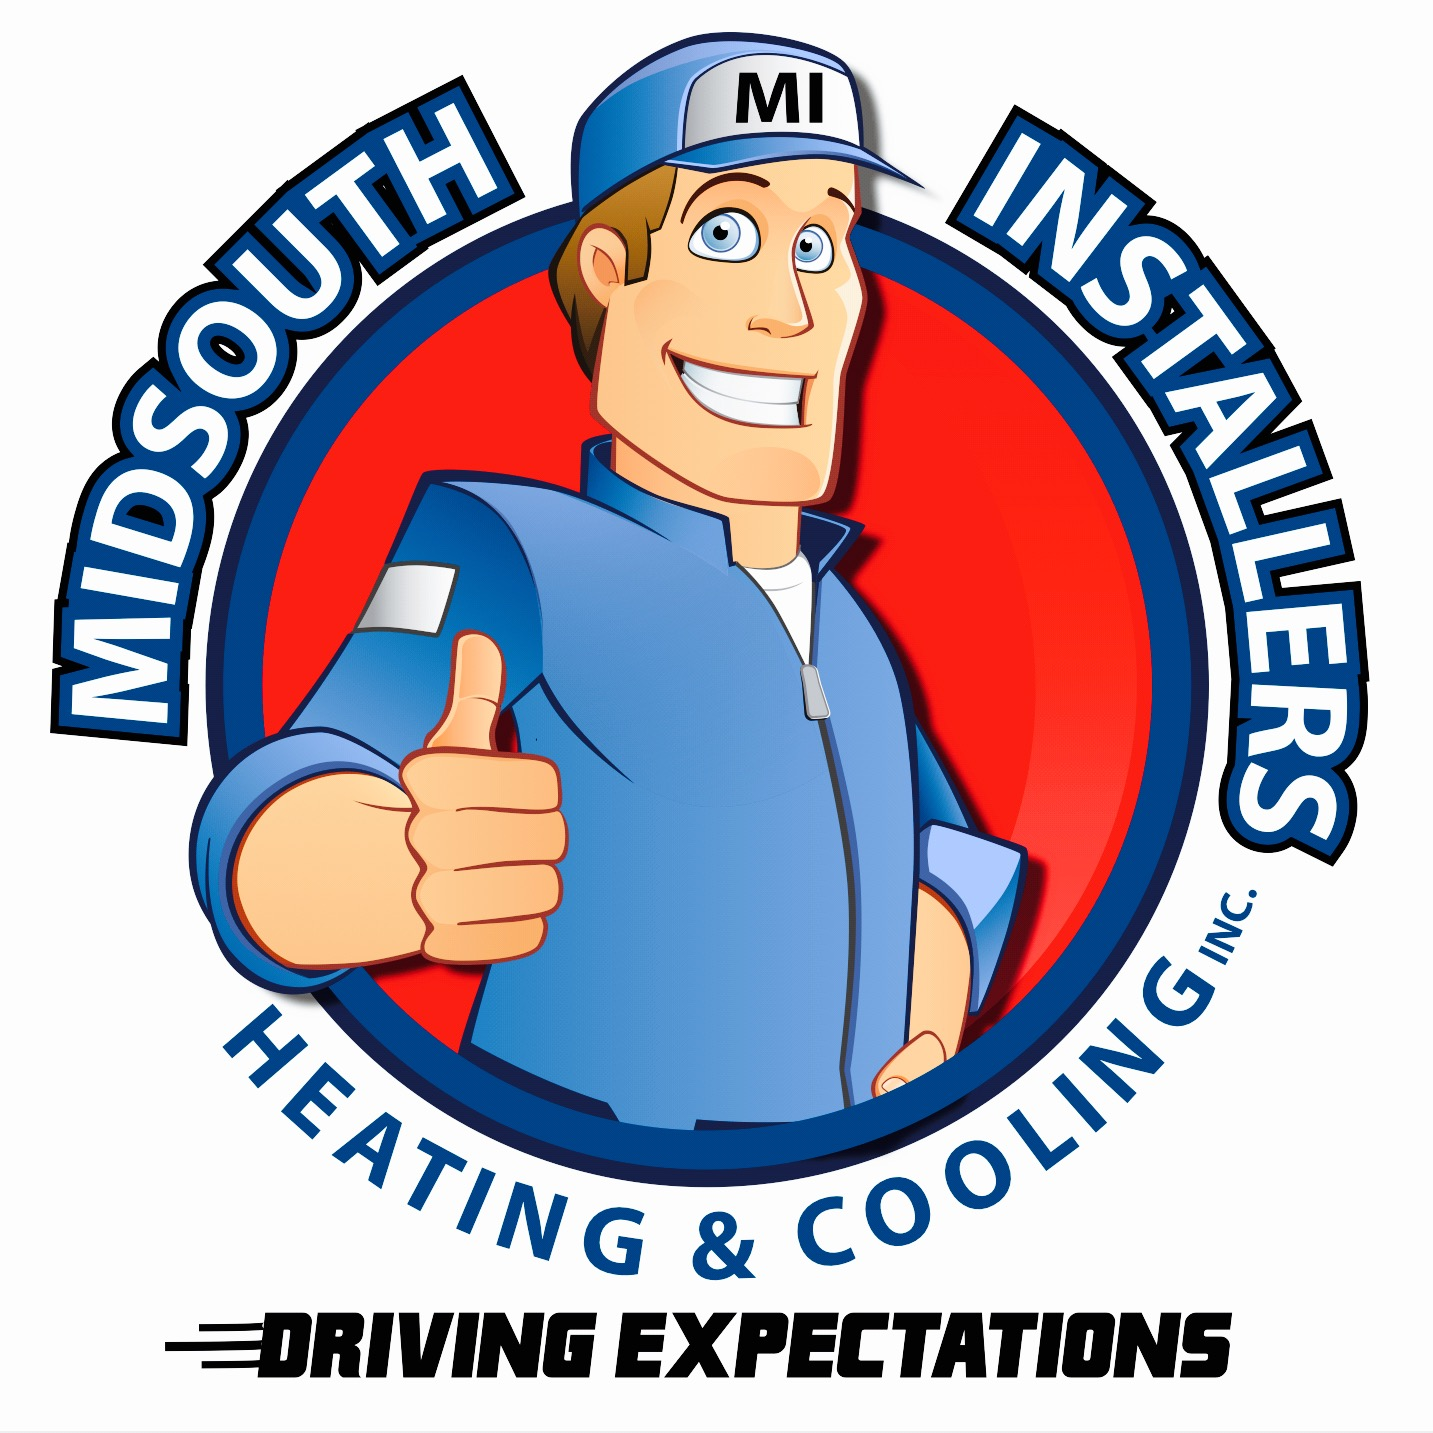 Midsouth Installers Heating & Cooling